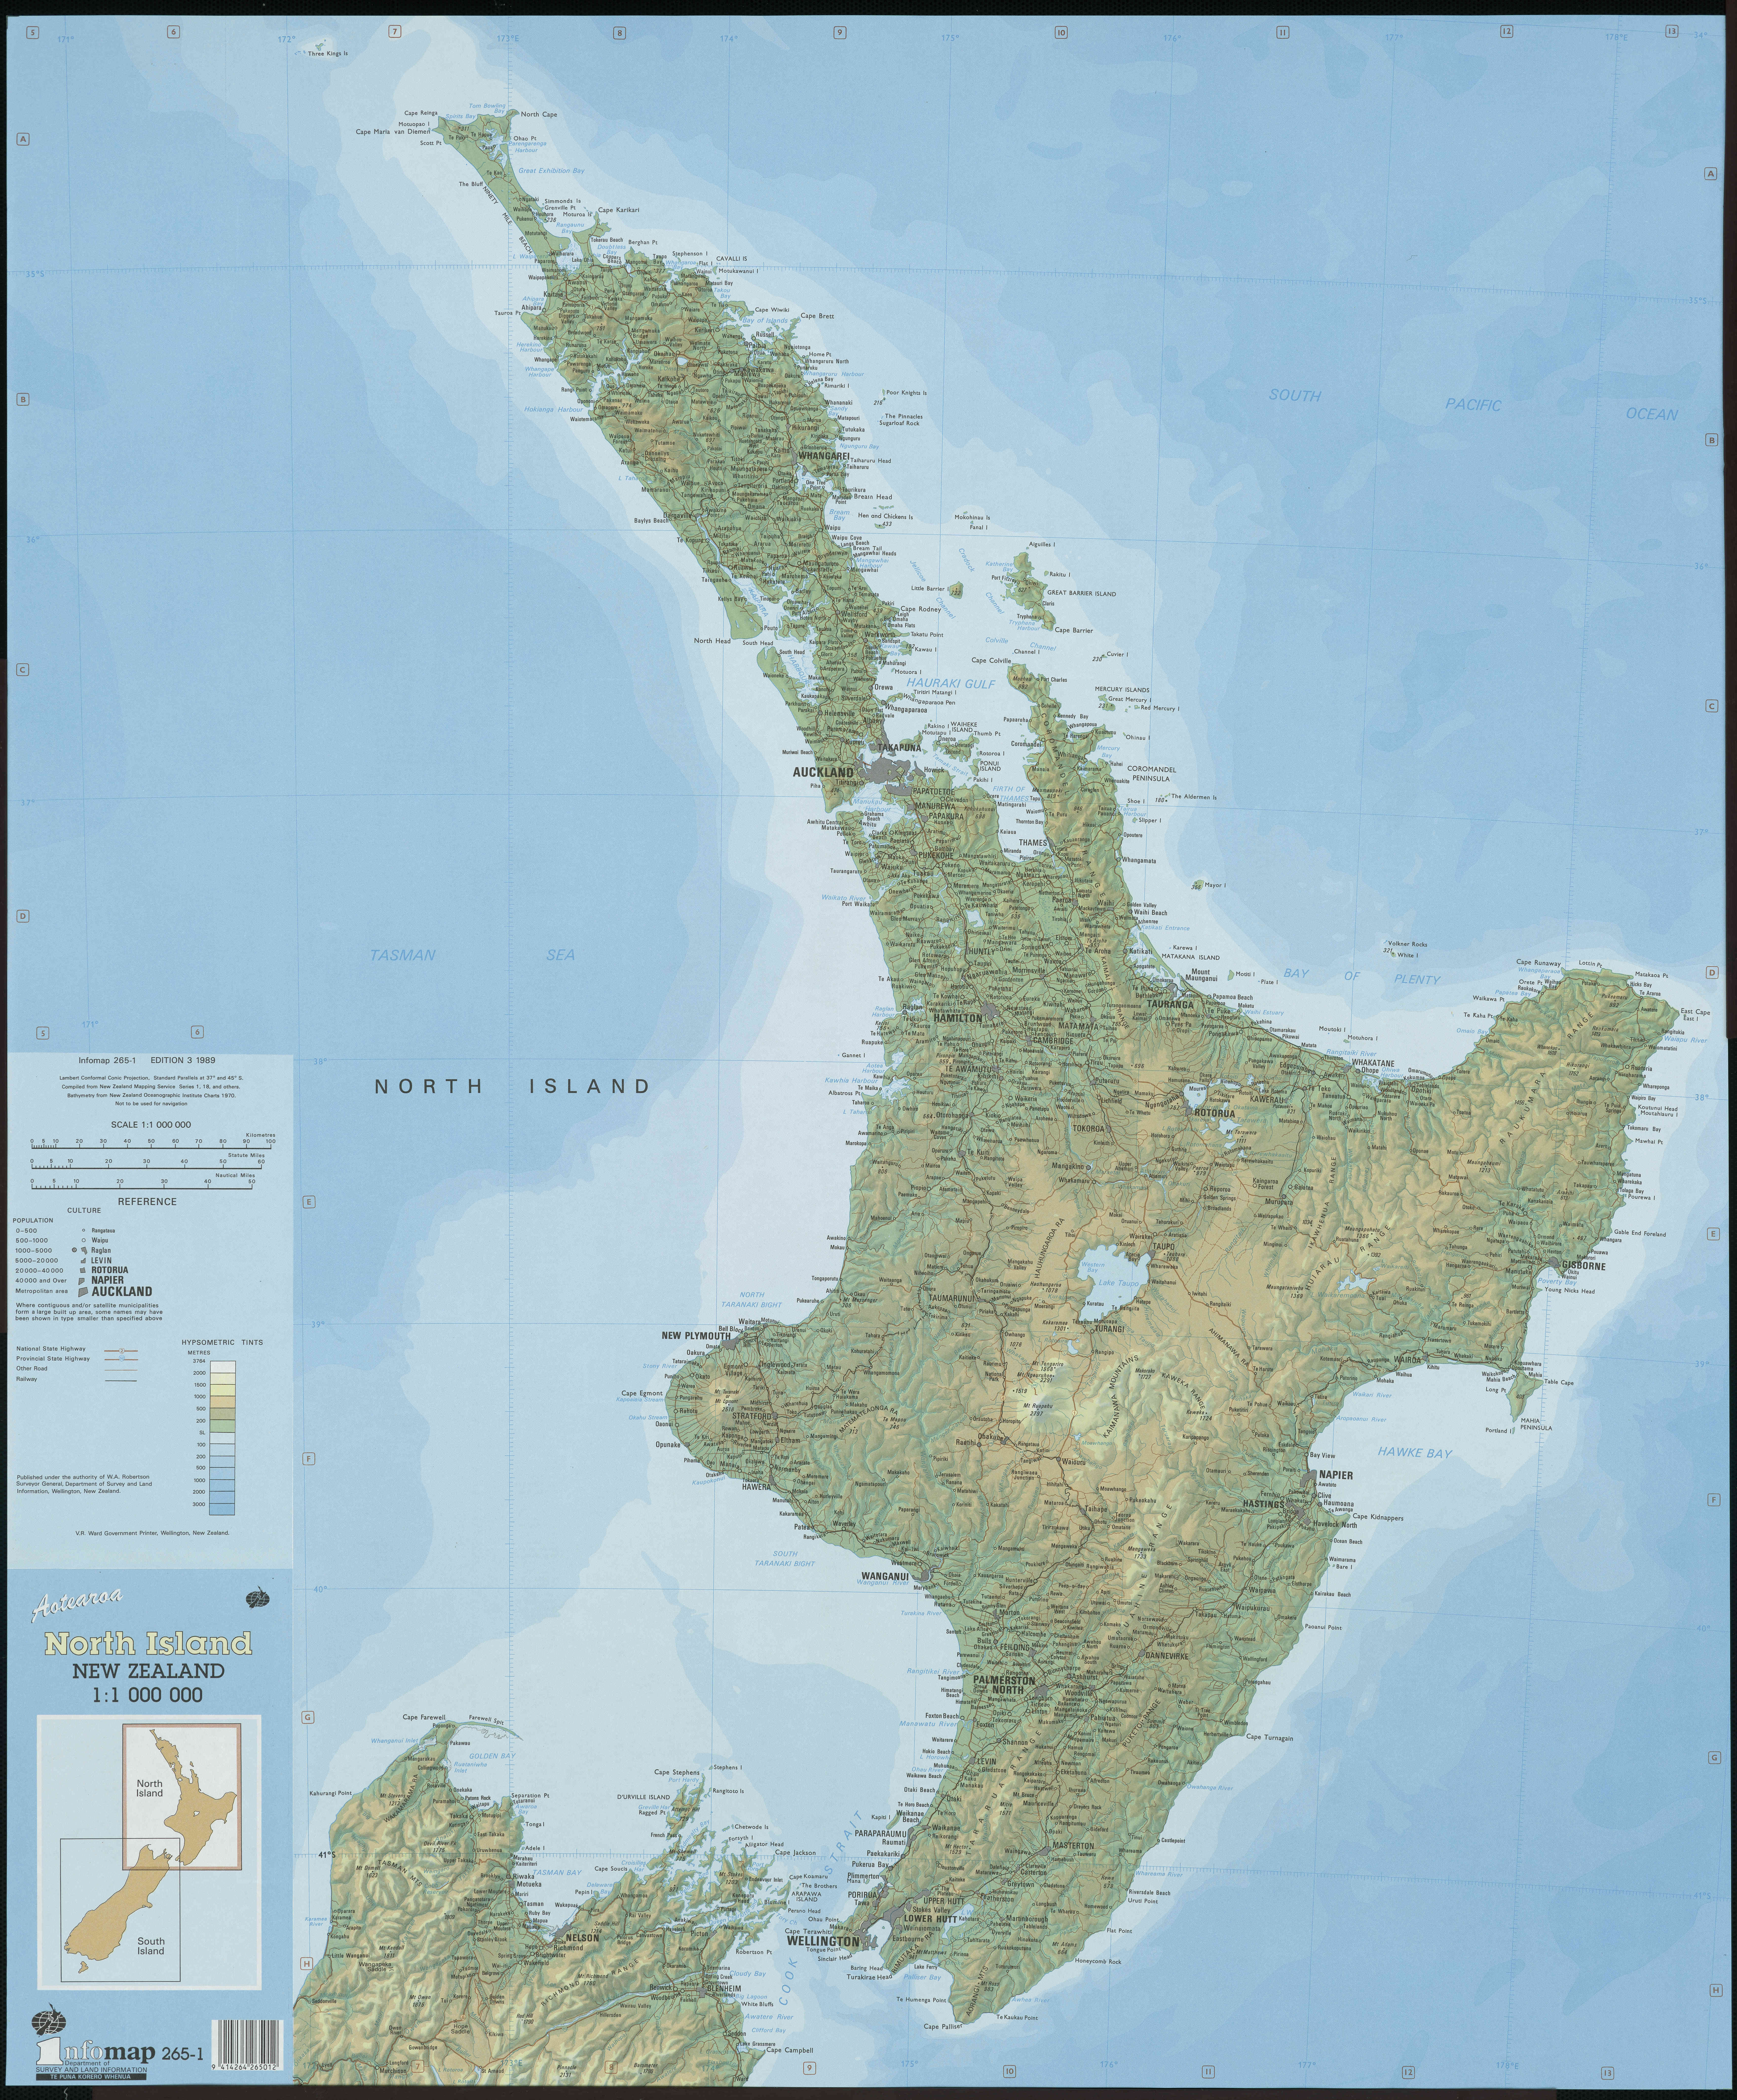 Topographic Map Of New Zealand.Large Detailed Topographical Map Of North Island New Zealand With